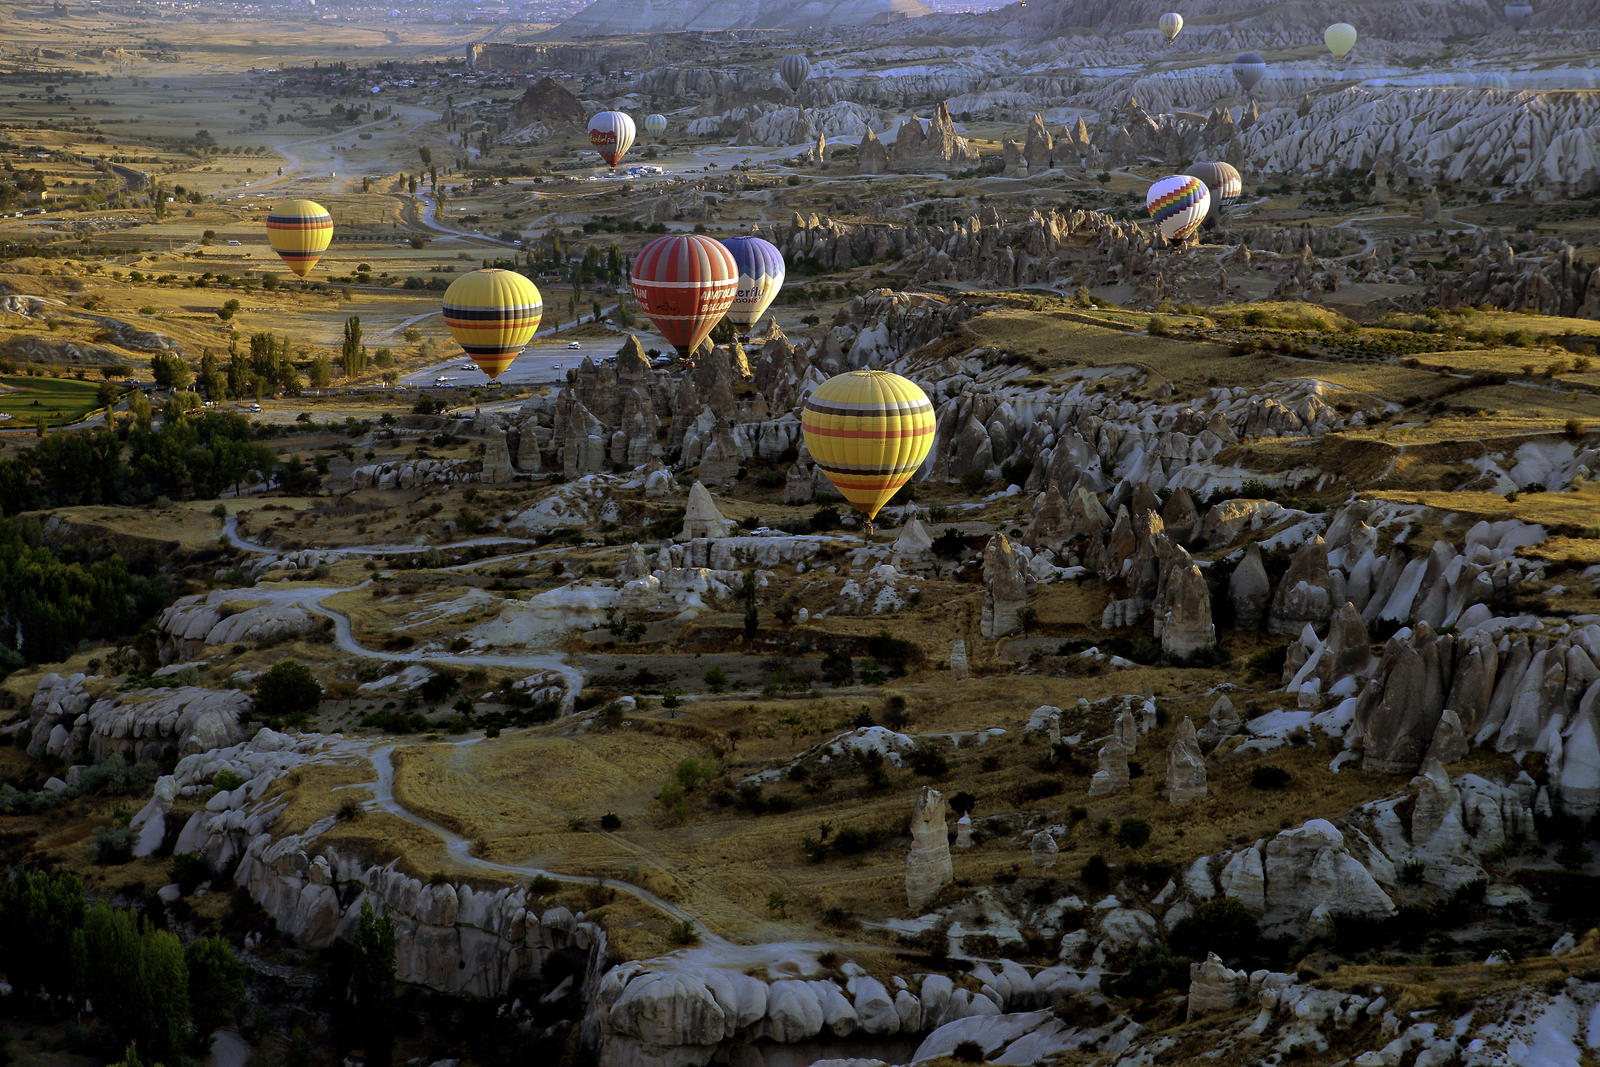 Sunrise over Cappadocia 2 by CitizenFresh